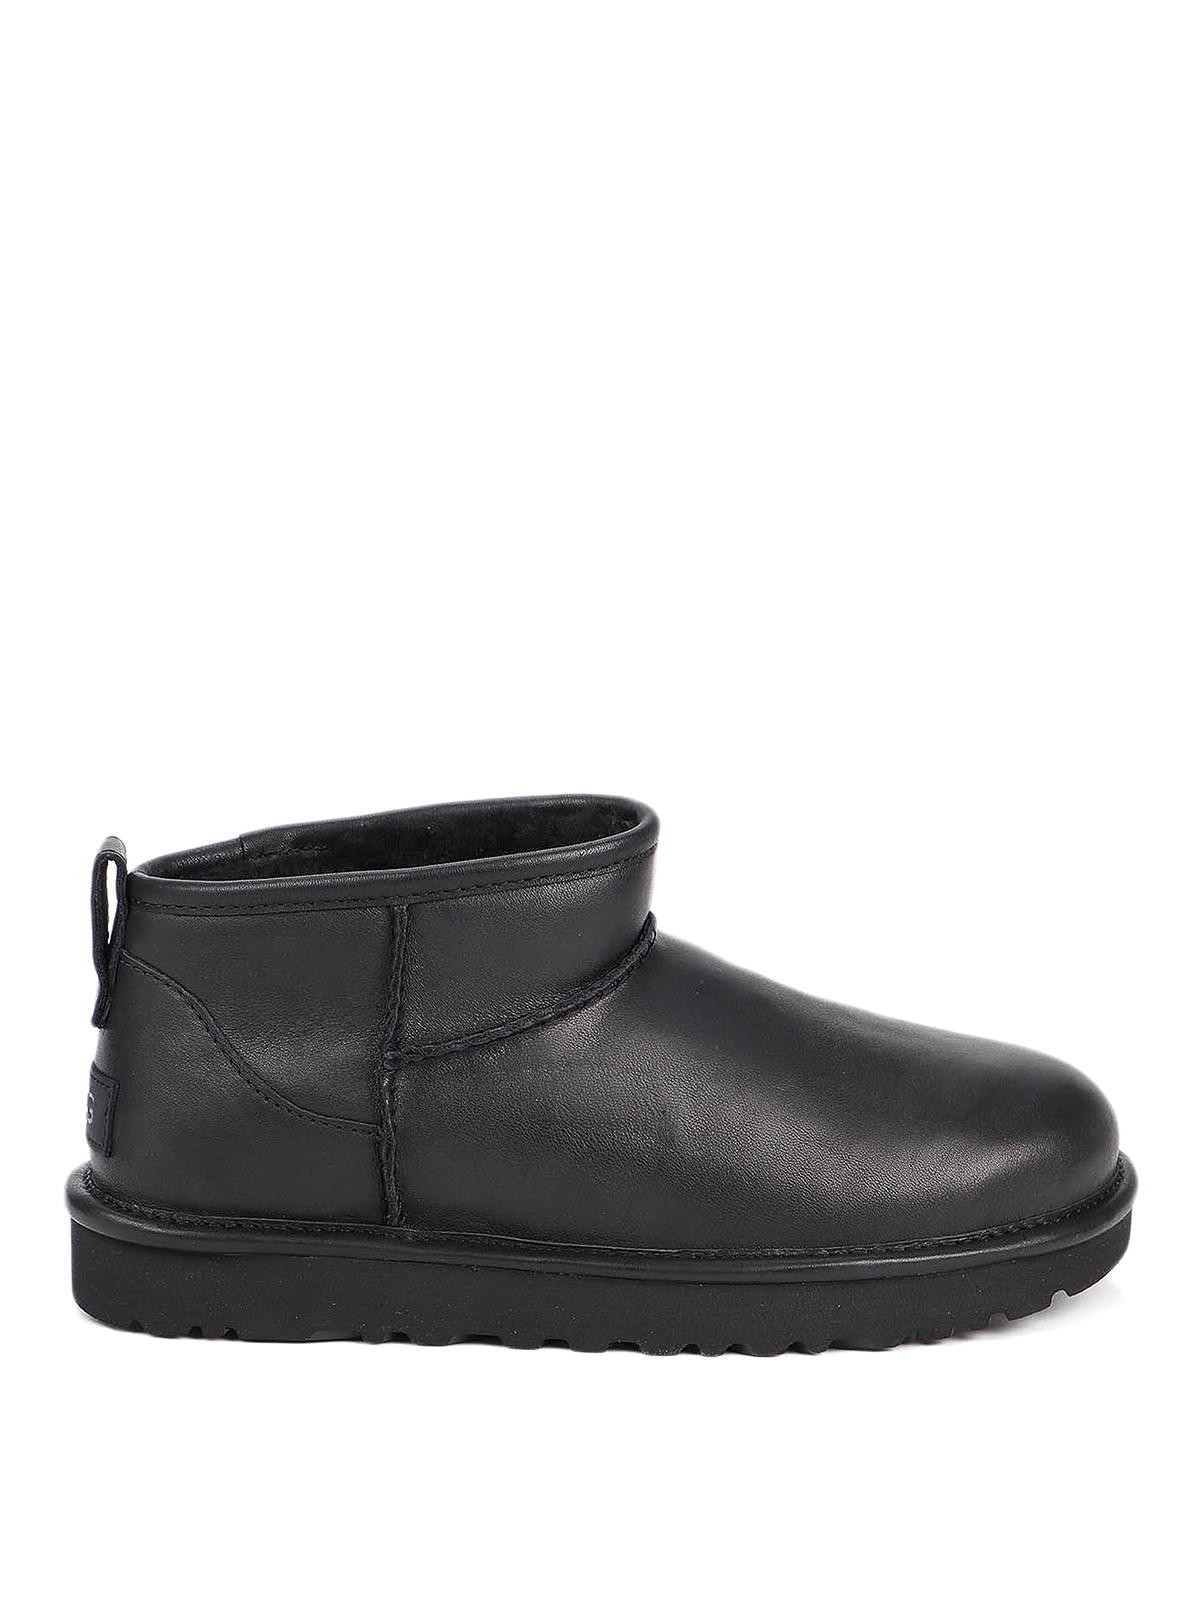 Ugg Leathers CLASSIC ULTRA MINI ANKLE BOOTS